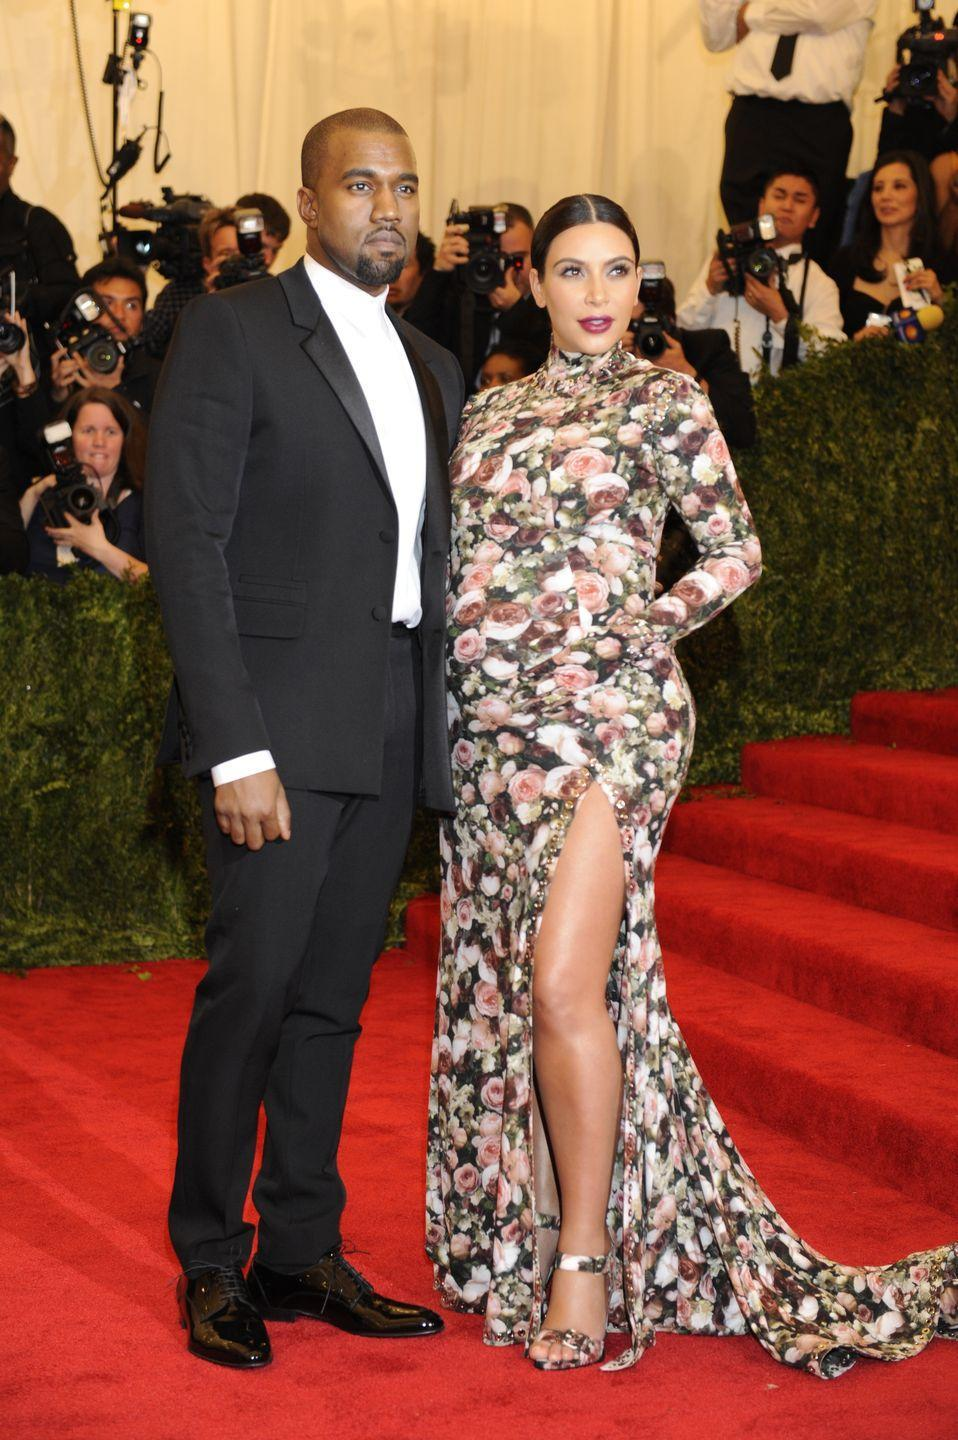 """<p>When Kim Kardashian attended the Met Gala for the first time in 2013, she wore a stretchy floral dress made by Givenchy. Pretty quickly, <a href=""""https://www.buzzfeed.com/stephenlaconte/kim-kardashian-tells-met-gala-couch-dress-story-vogue"""" rel=""""nofollow noopener"""" target=""""_blank"""" data-ylk=""""slk:social media lit up with people criticizing Kardashian's look"""" class=""""link rapid-noclick-resp"""">social media lit up with people criticizing Kardashian's look</a> and comparing her dress to a couch. <a href=""""https://www.businessinsider.com/robin-williams-tweets-about-kim-kardashians-dress-2013-5"""" rel=""""nofollow noopener"""" target=""""_blank"""" data-ylk=""""slk:Robin Williams"""" class=""""link rapid-noclick-resp"""">Robin Williams</a> even joined in with a Mrs. Doubtfire joke. Kim <a href=""""https://www.youtube.com/watch?v=8Knj8-MKFn8&feature=emb_imp_woyt"""" rel=""""nofollow noopener"""" target=""""_blank"""" data-ylk=""""slk:later said in an interview"""" class=""""link rapid-noclick-resp"""">later said in an interview</a>, """"I was crying the whole way home. Because I just couldn't believe it. There were all these memes about me and this couch."""" </p>"""